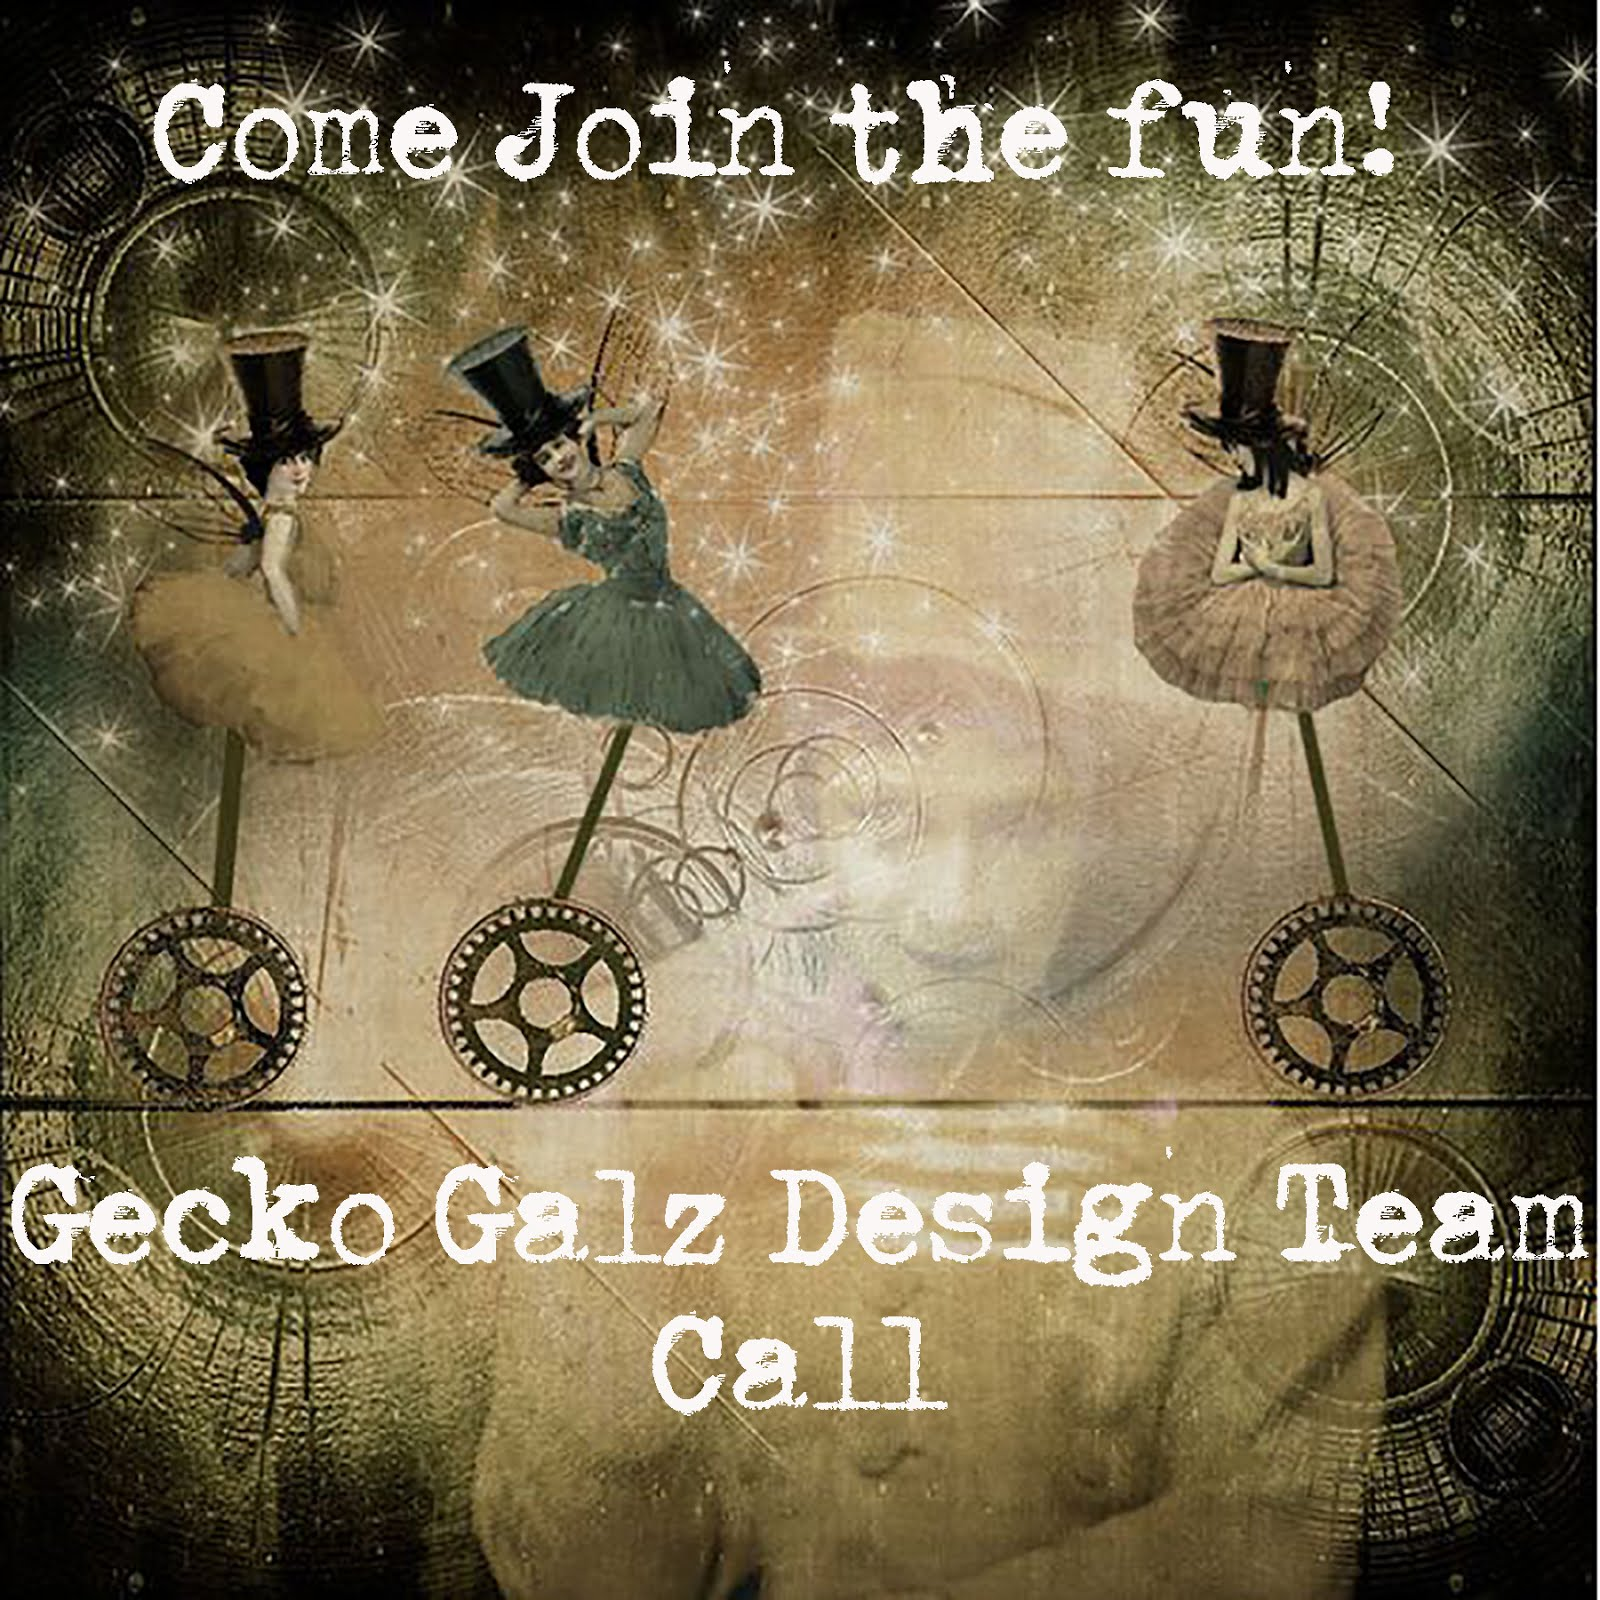 Join The Gecko Galz Design Team